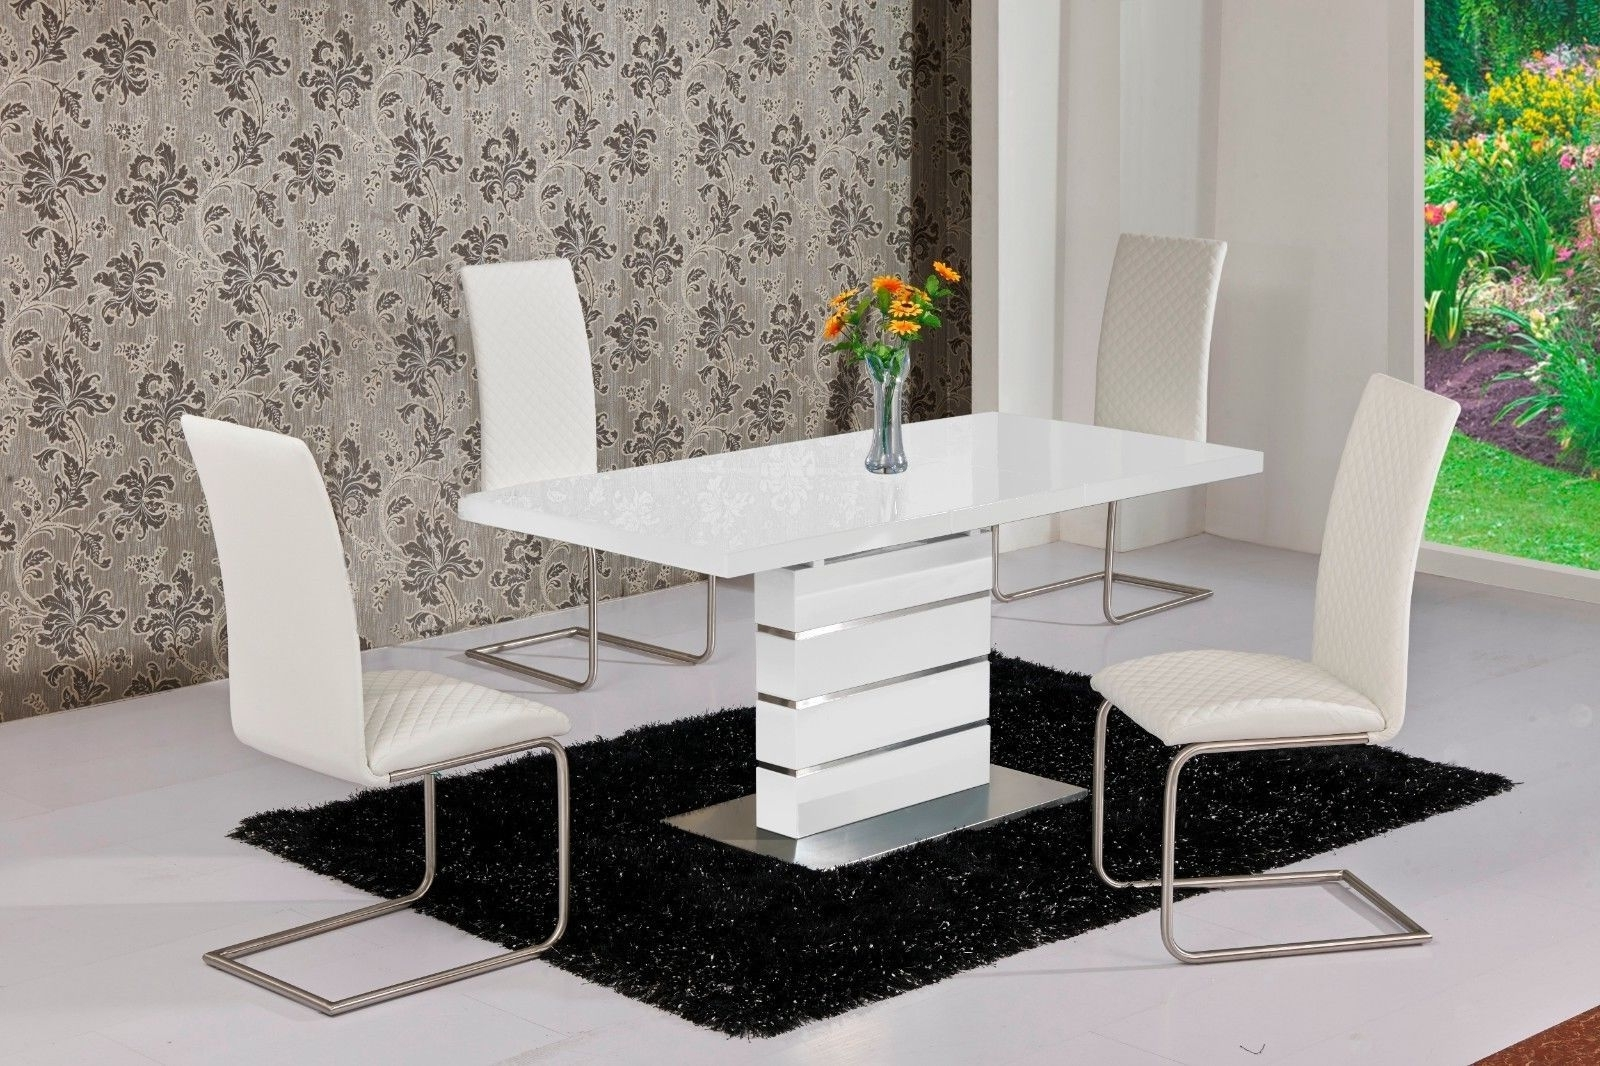 Mace High Gloss Extending 120 160 Dining Table & Chair Set – White In Most Current Hi Gloss Dining Tables (View 4 of 25)